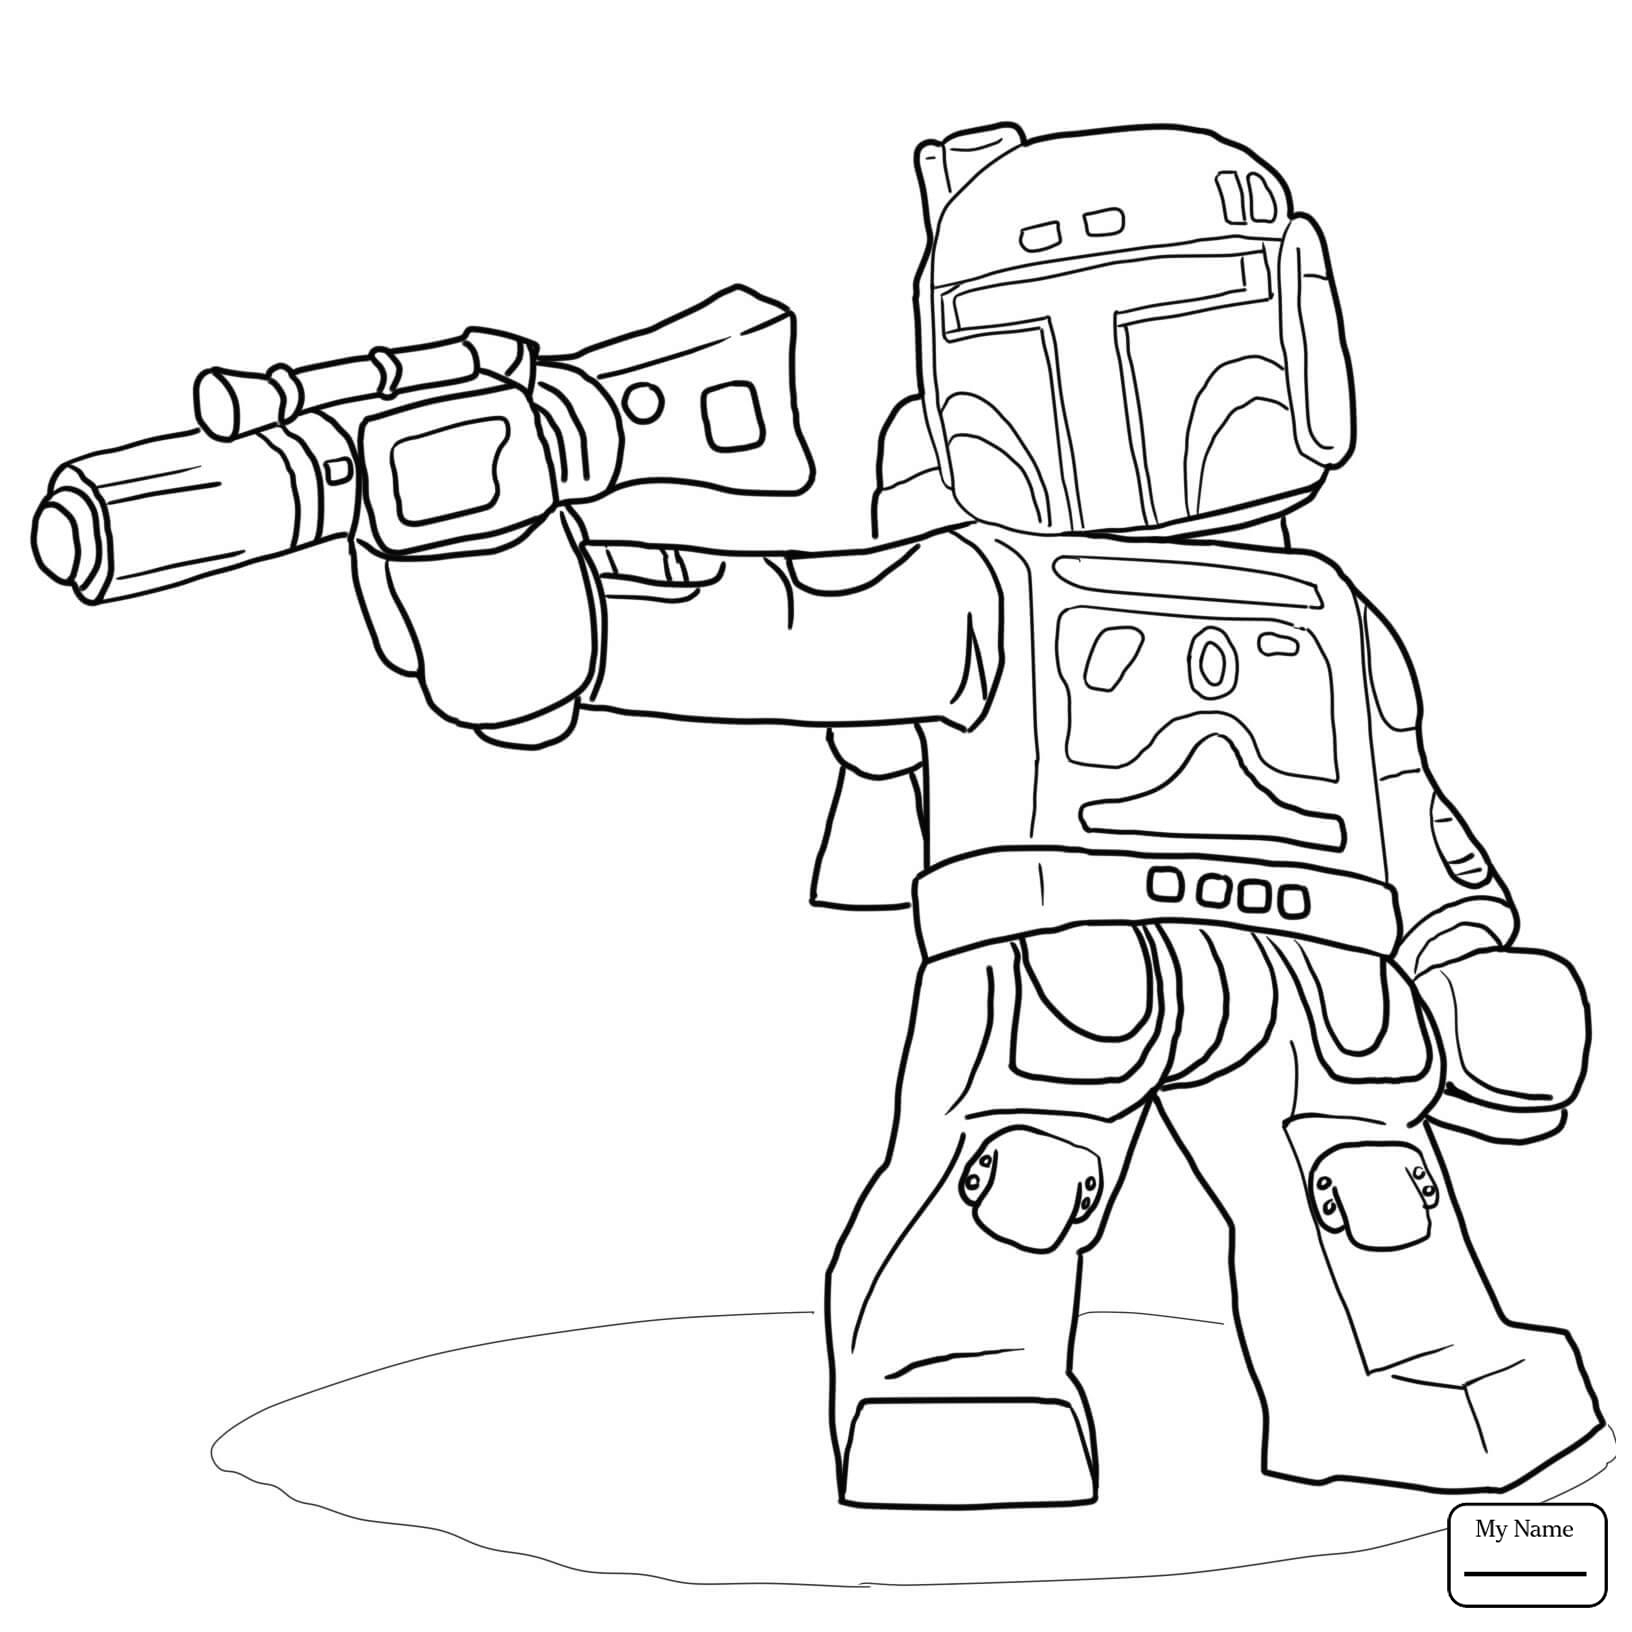 lego star wars printable coloring pages lego star wars coloring pages to download and print for free wars star pages coloring lego printable